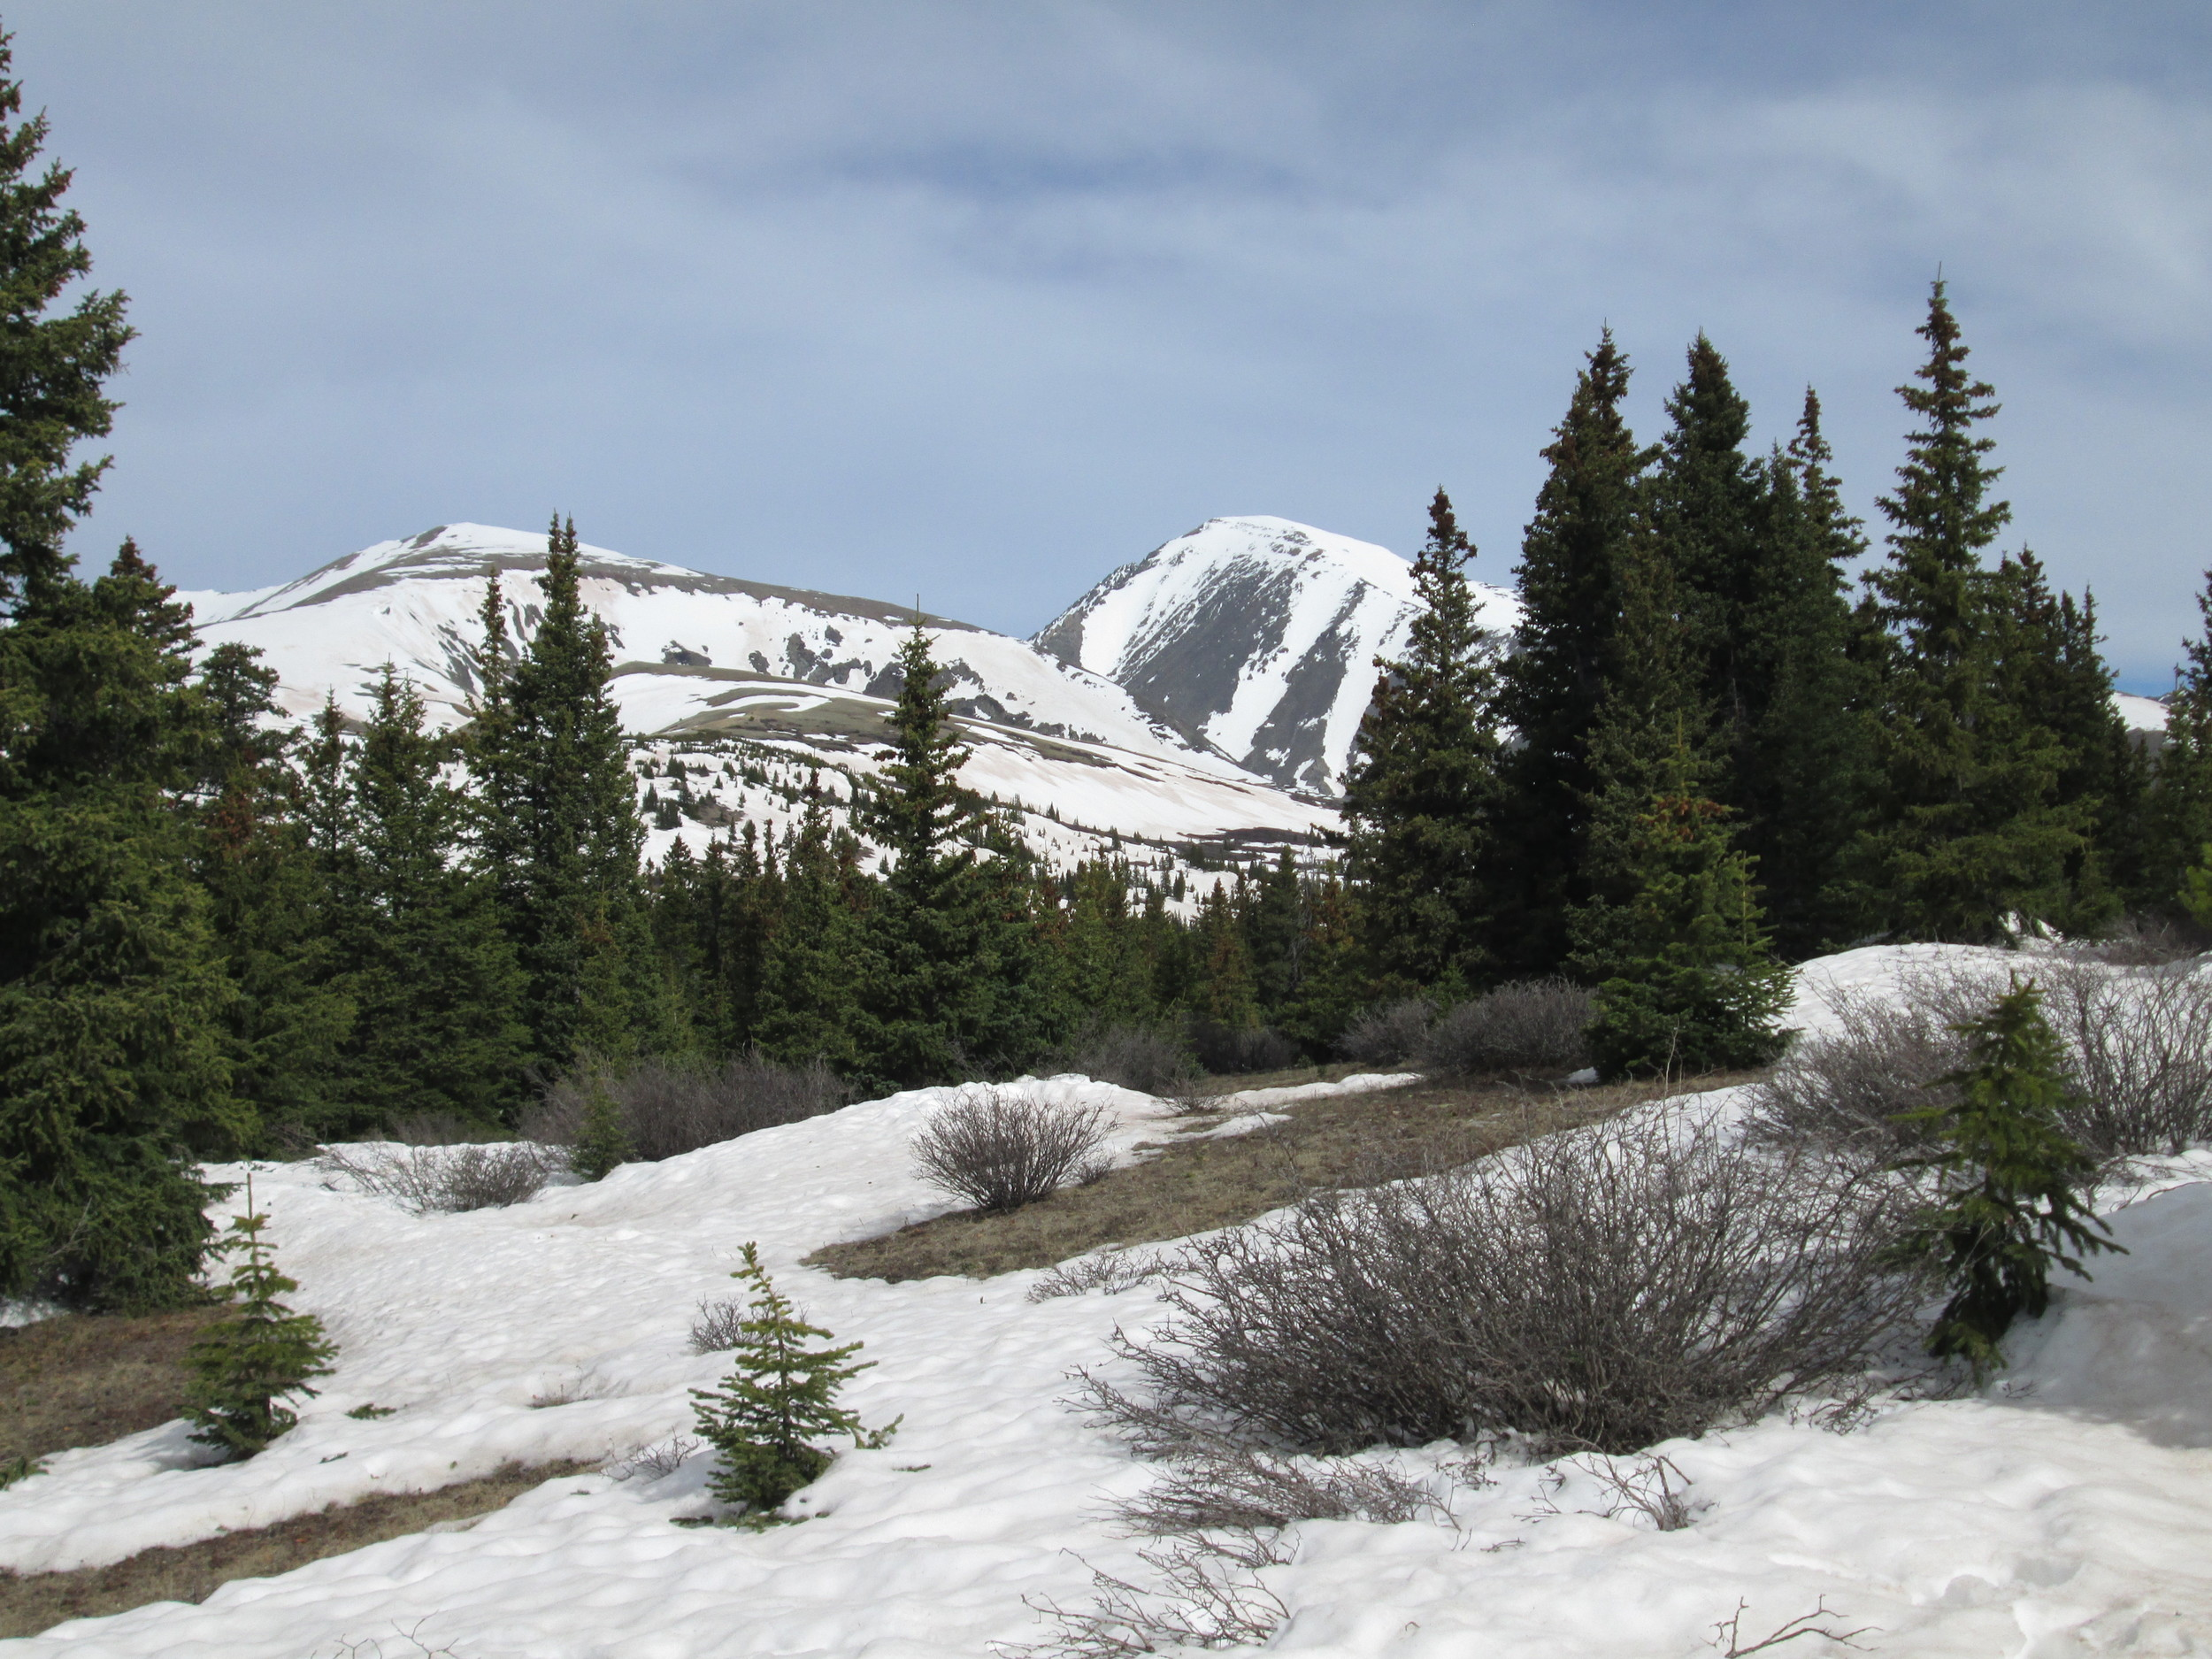 The usual view of Quandary Peak in the distance, as seen from the Hoosier Pass CODOS site, showing the Memorial Day weekend storm clean snow still obscuring most dust.